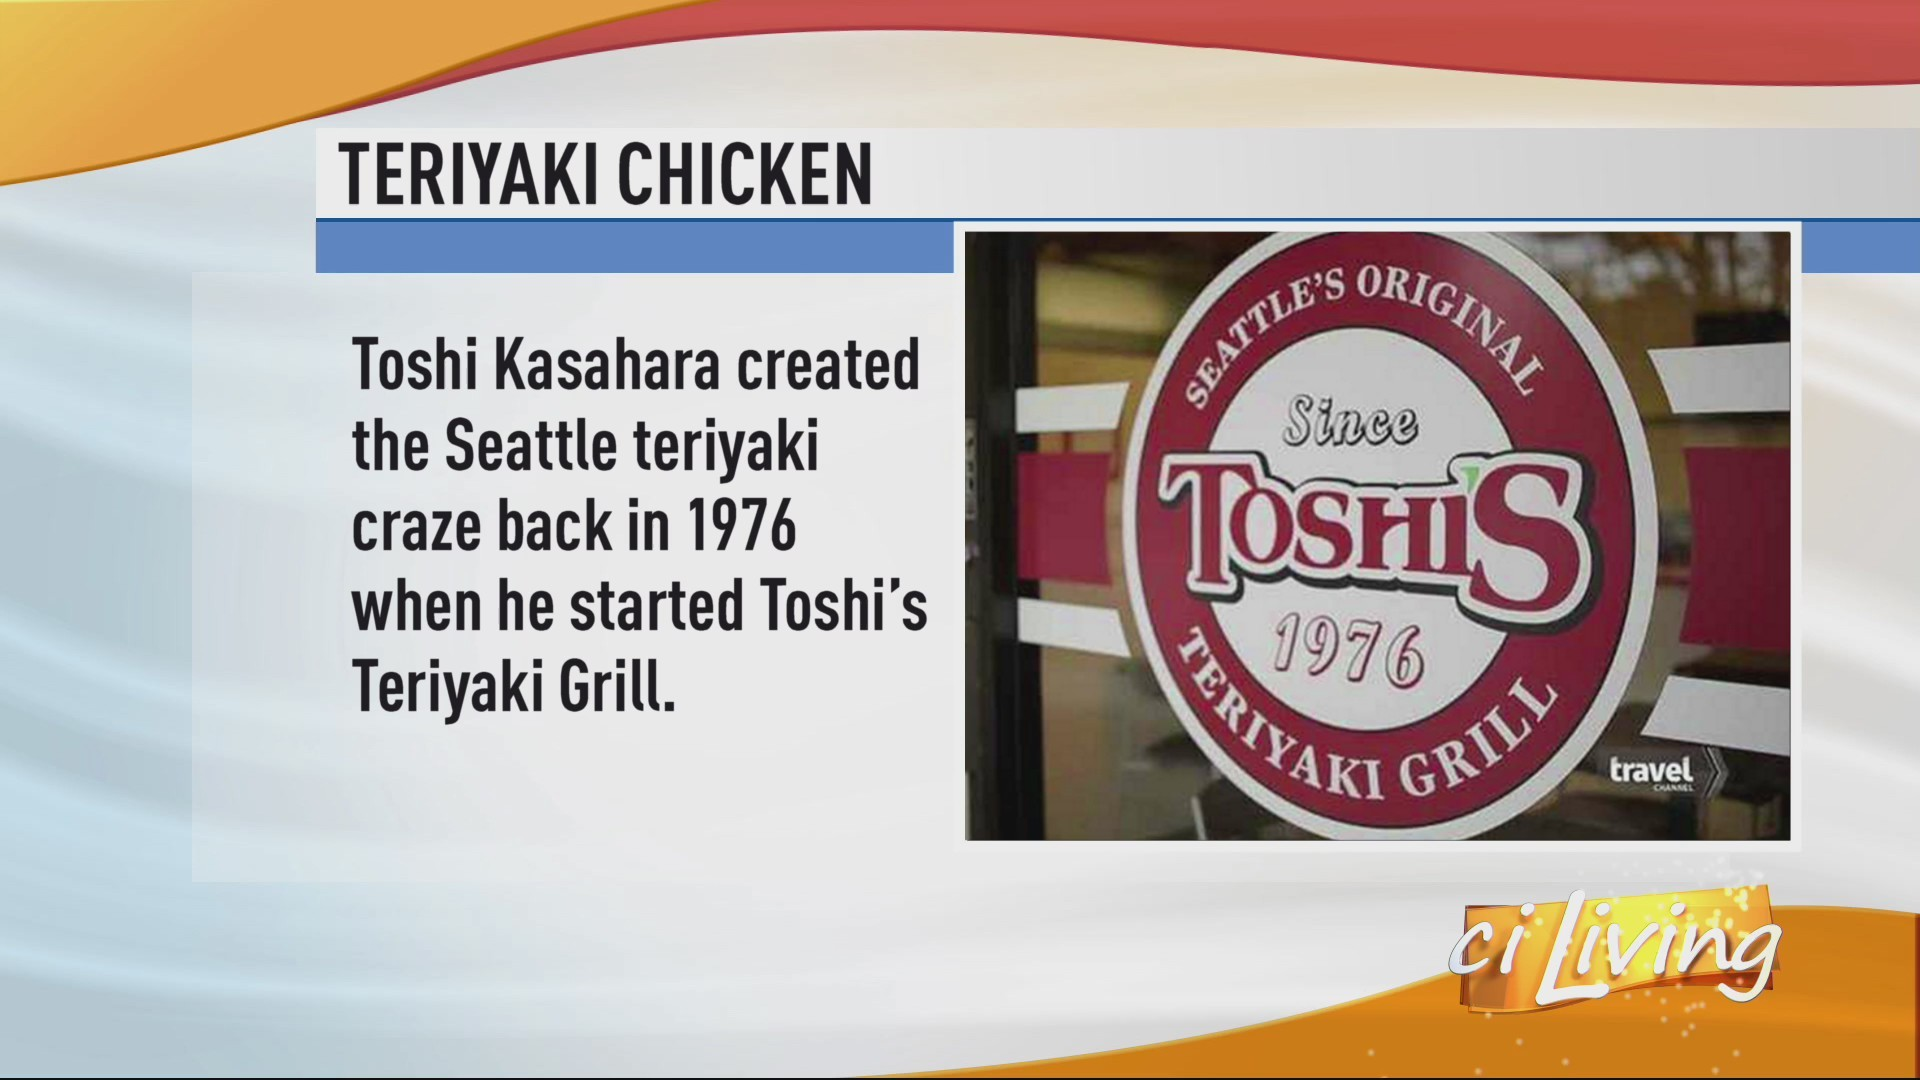 History of Teriyaki Chicken